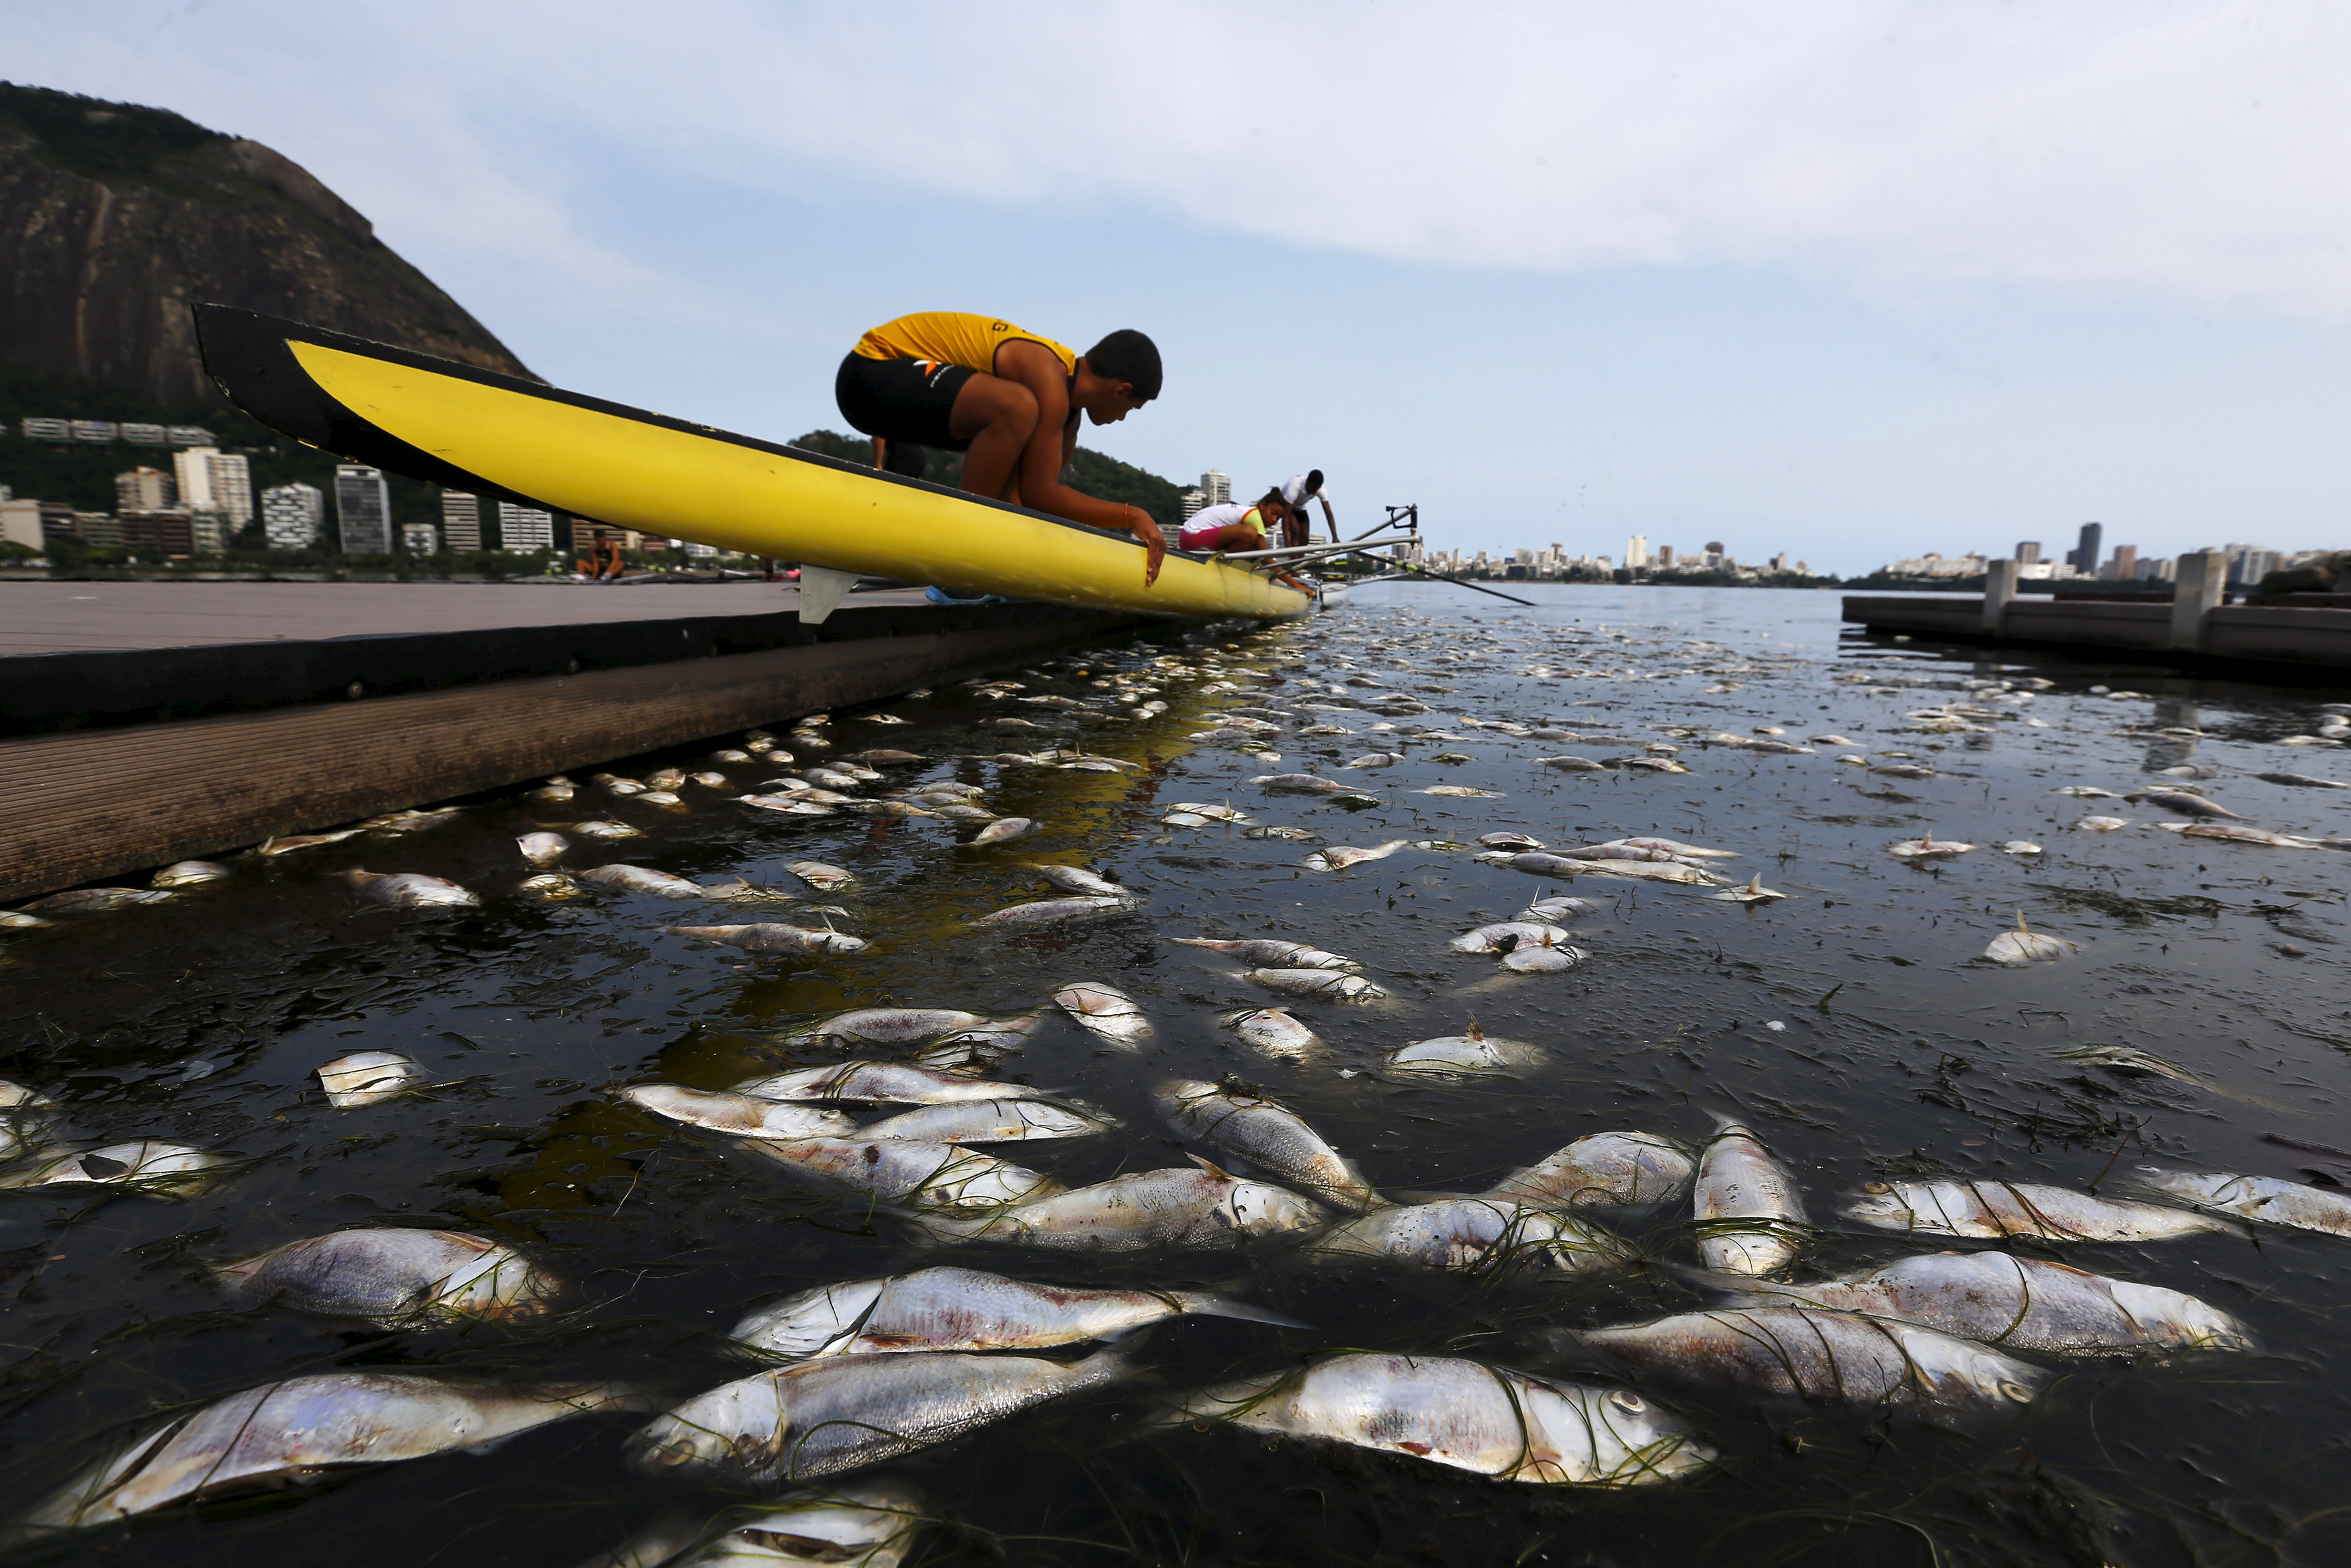 Dead fish are pictured next to a rowing athlete as he puts his boat on the water before a training session at the Rodrigo de Freitas lagoon, in Rio de Janeiro April 13, 2015.